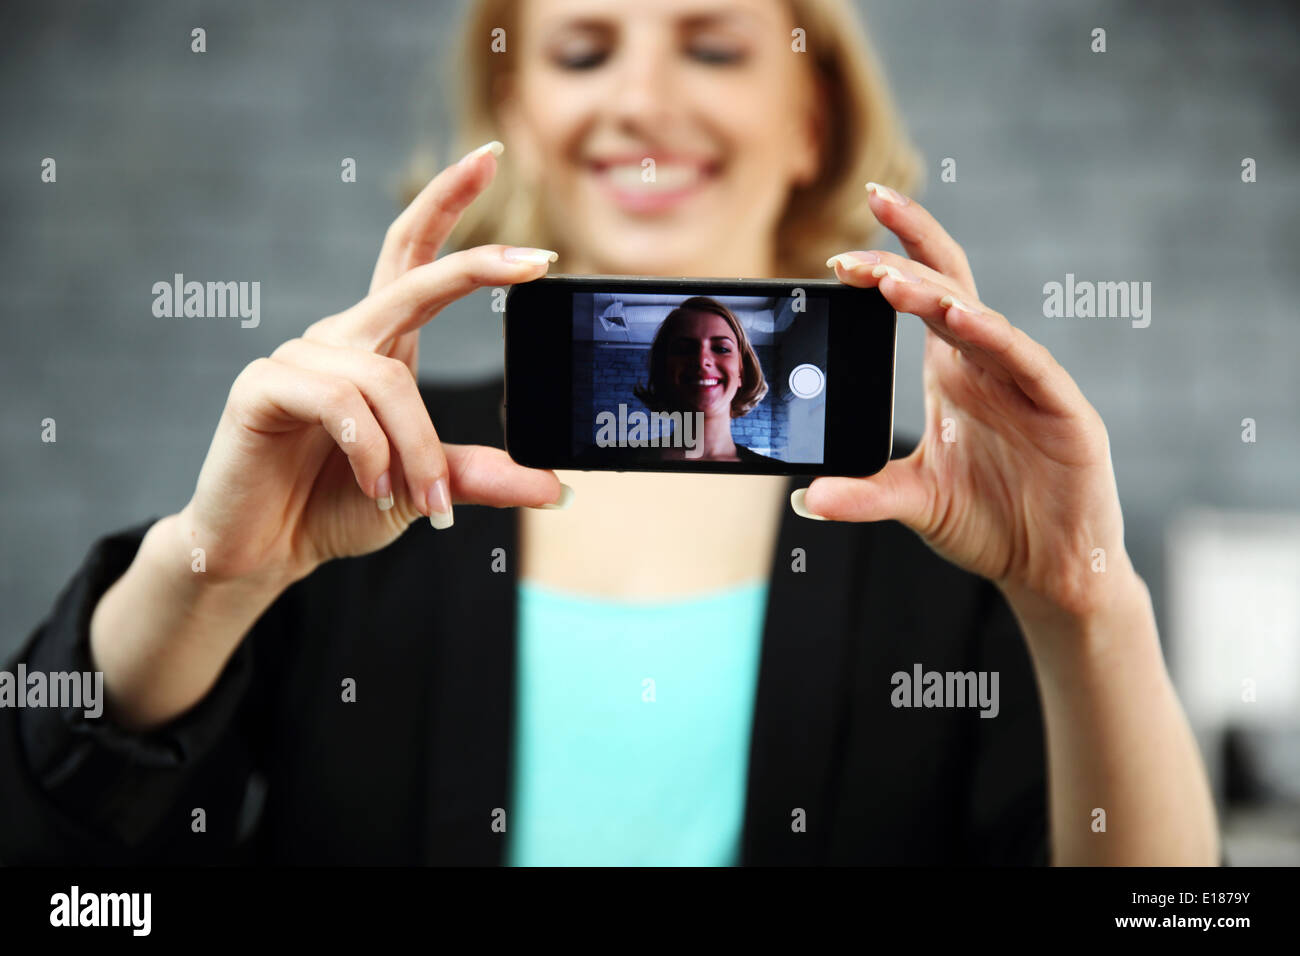 Young smiling woman making a self photo by her smartphone in office. Focus on smartphone - Stock Image